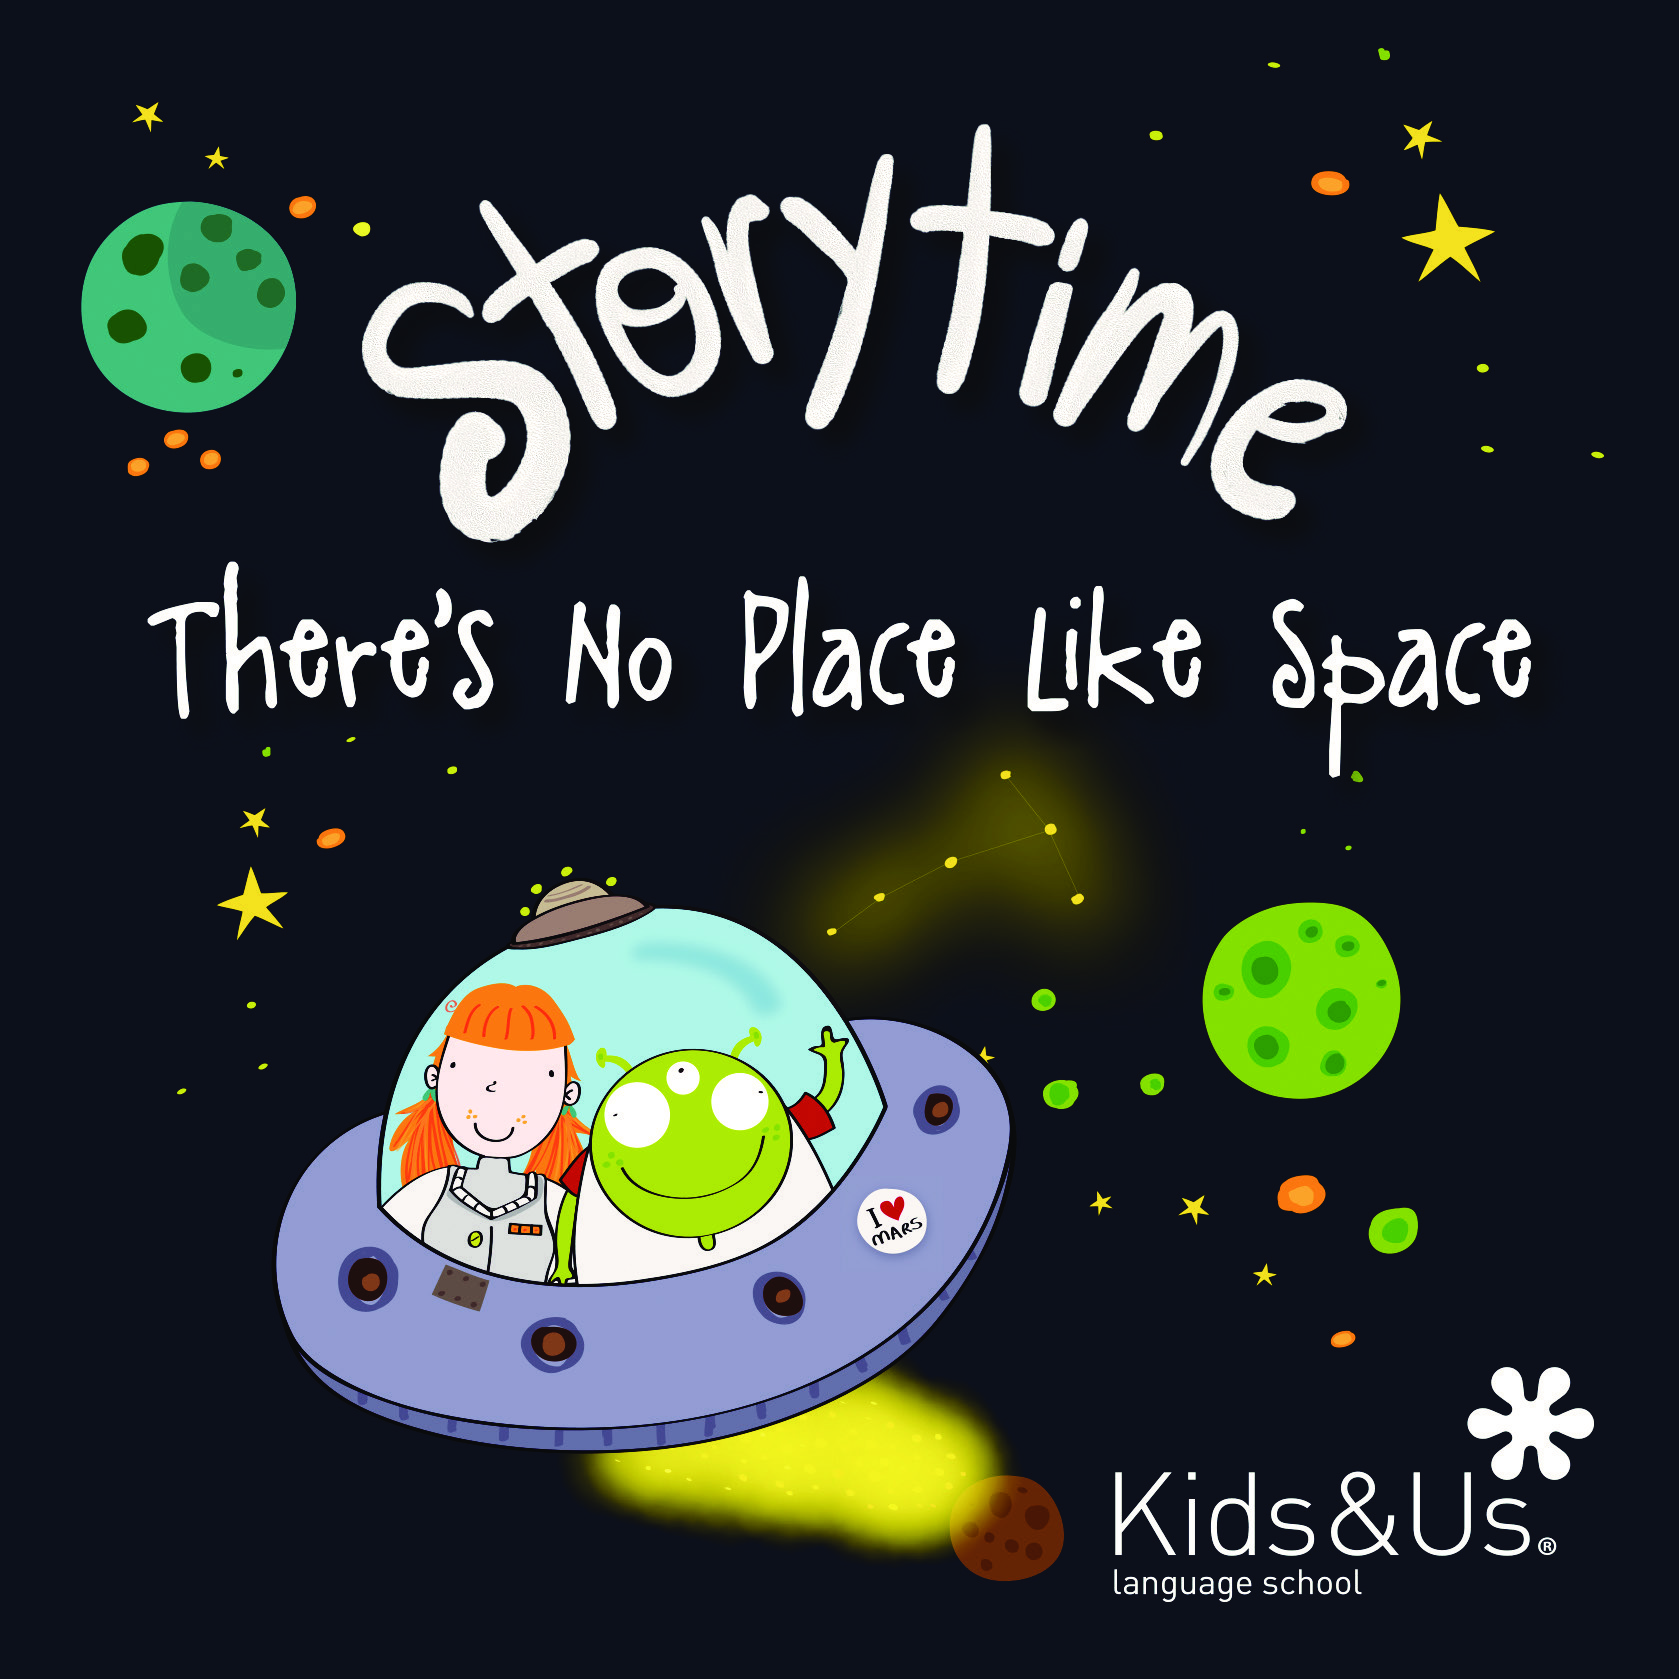 Storytime There's no place like space